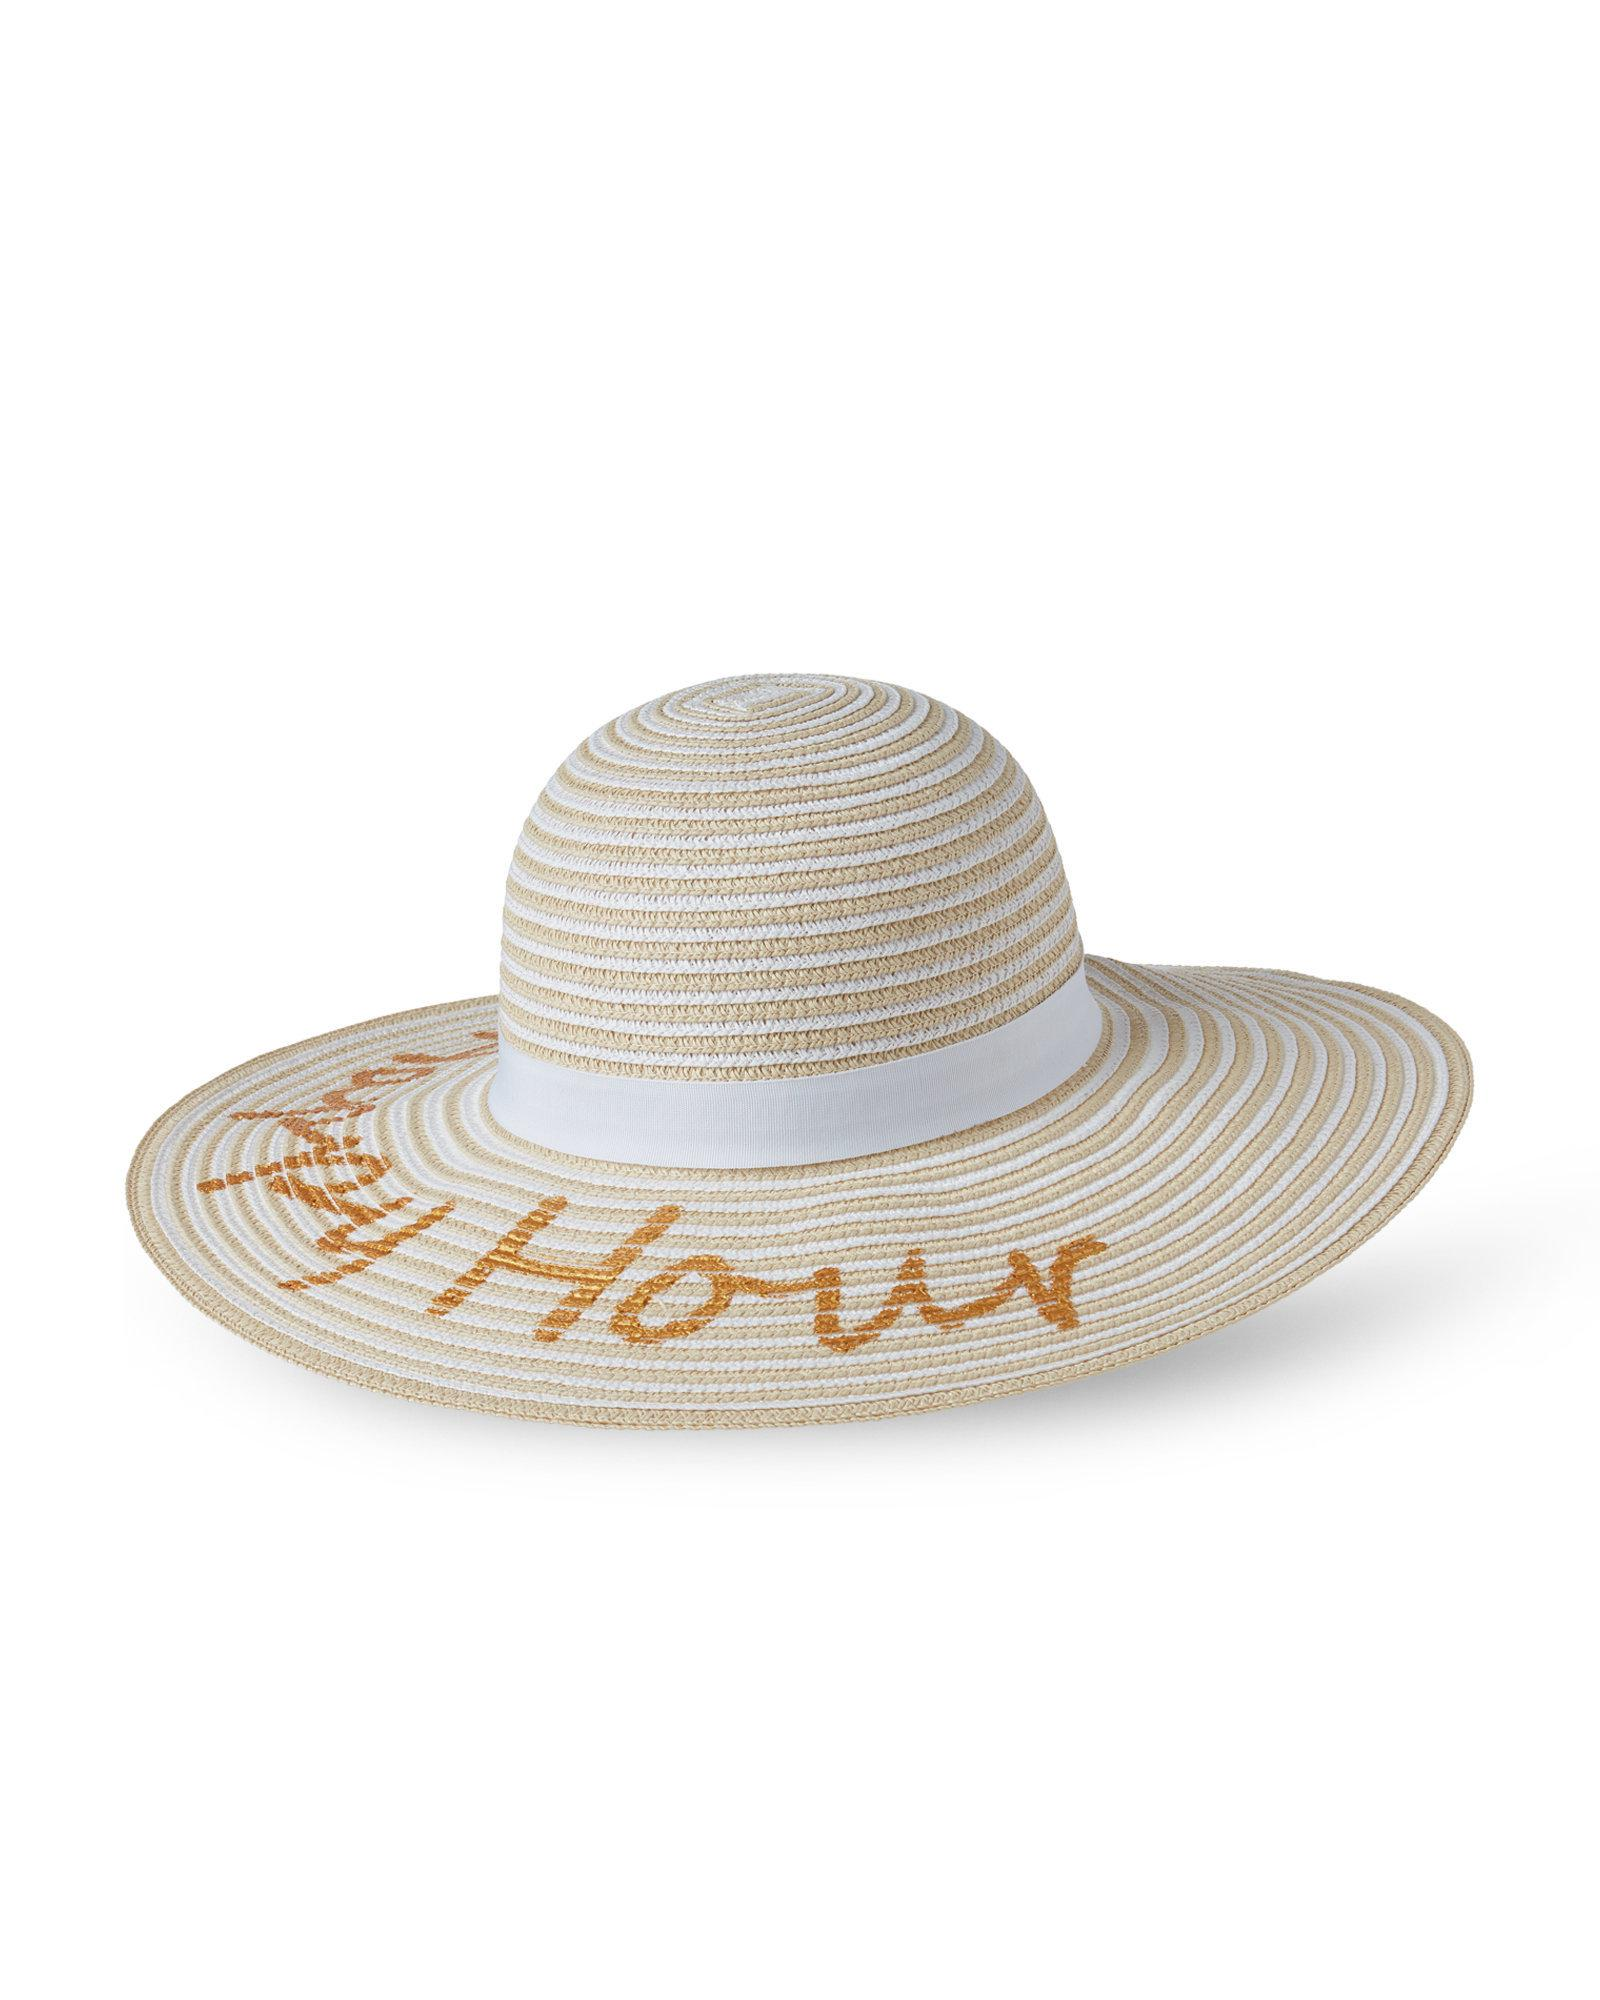 78022bdd5d6 Lyst - August Hat Company Happy Hour Floppy Hat in White